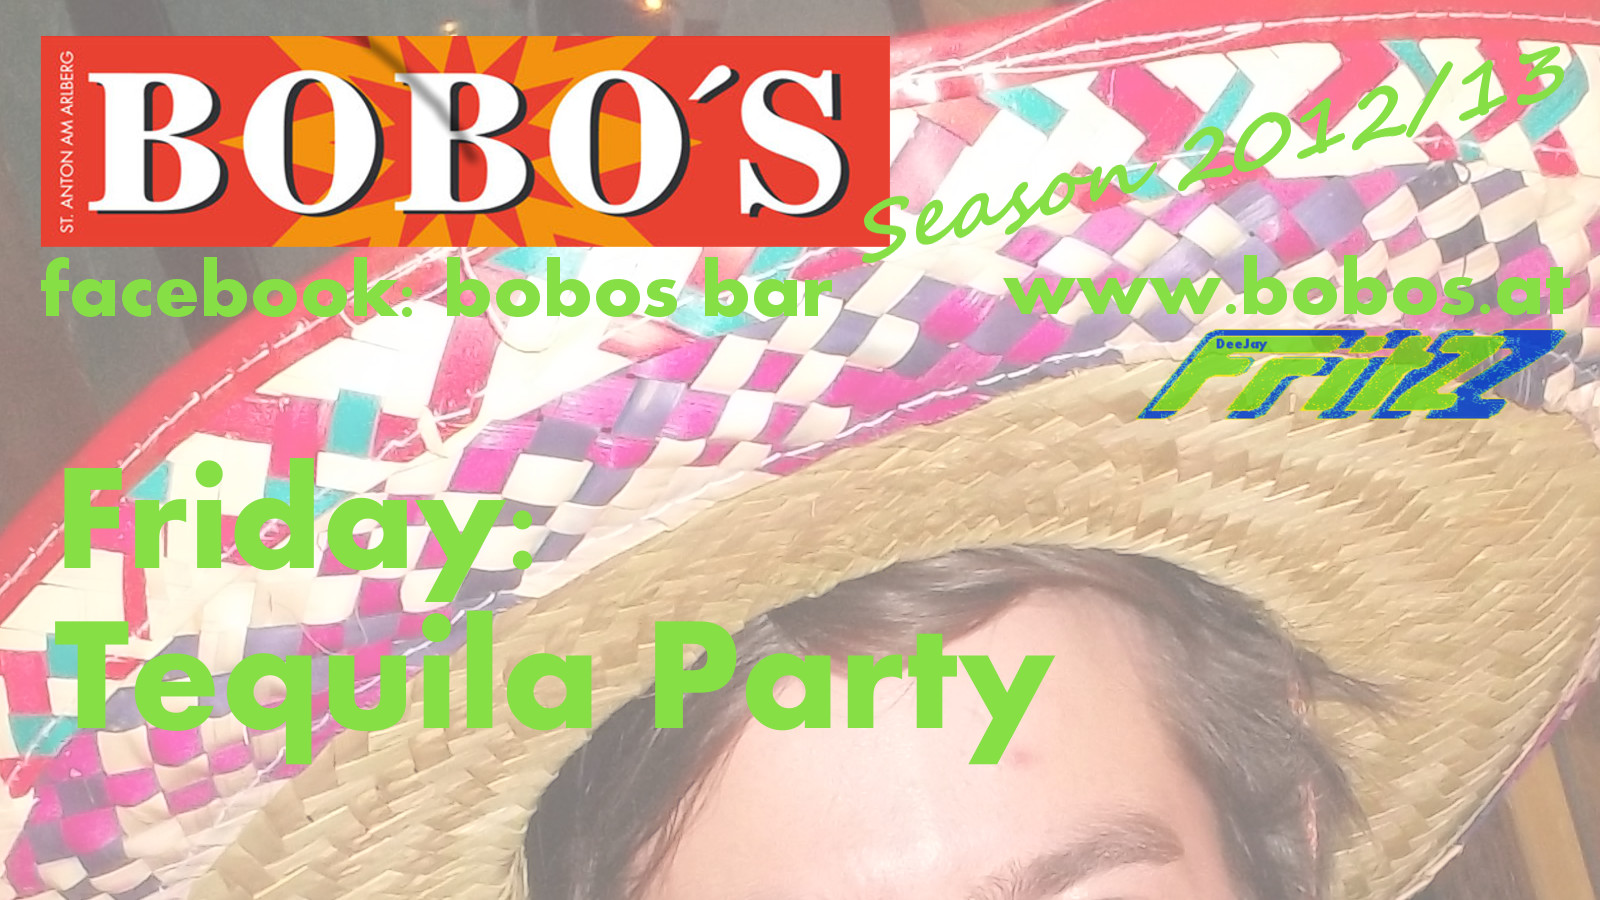 screen-bobos-tequilaparty-02